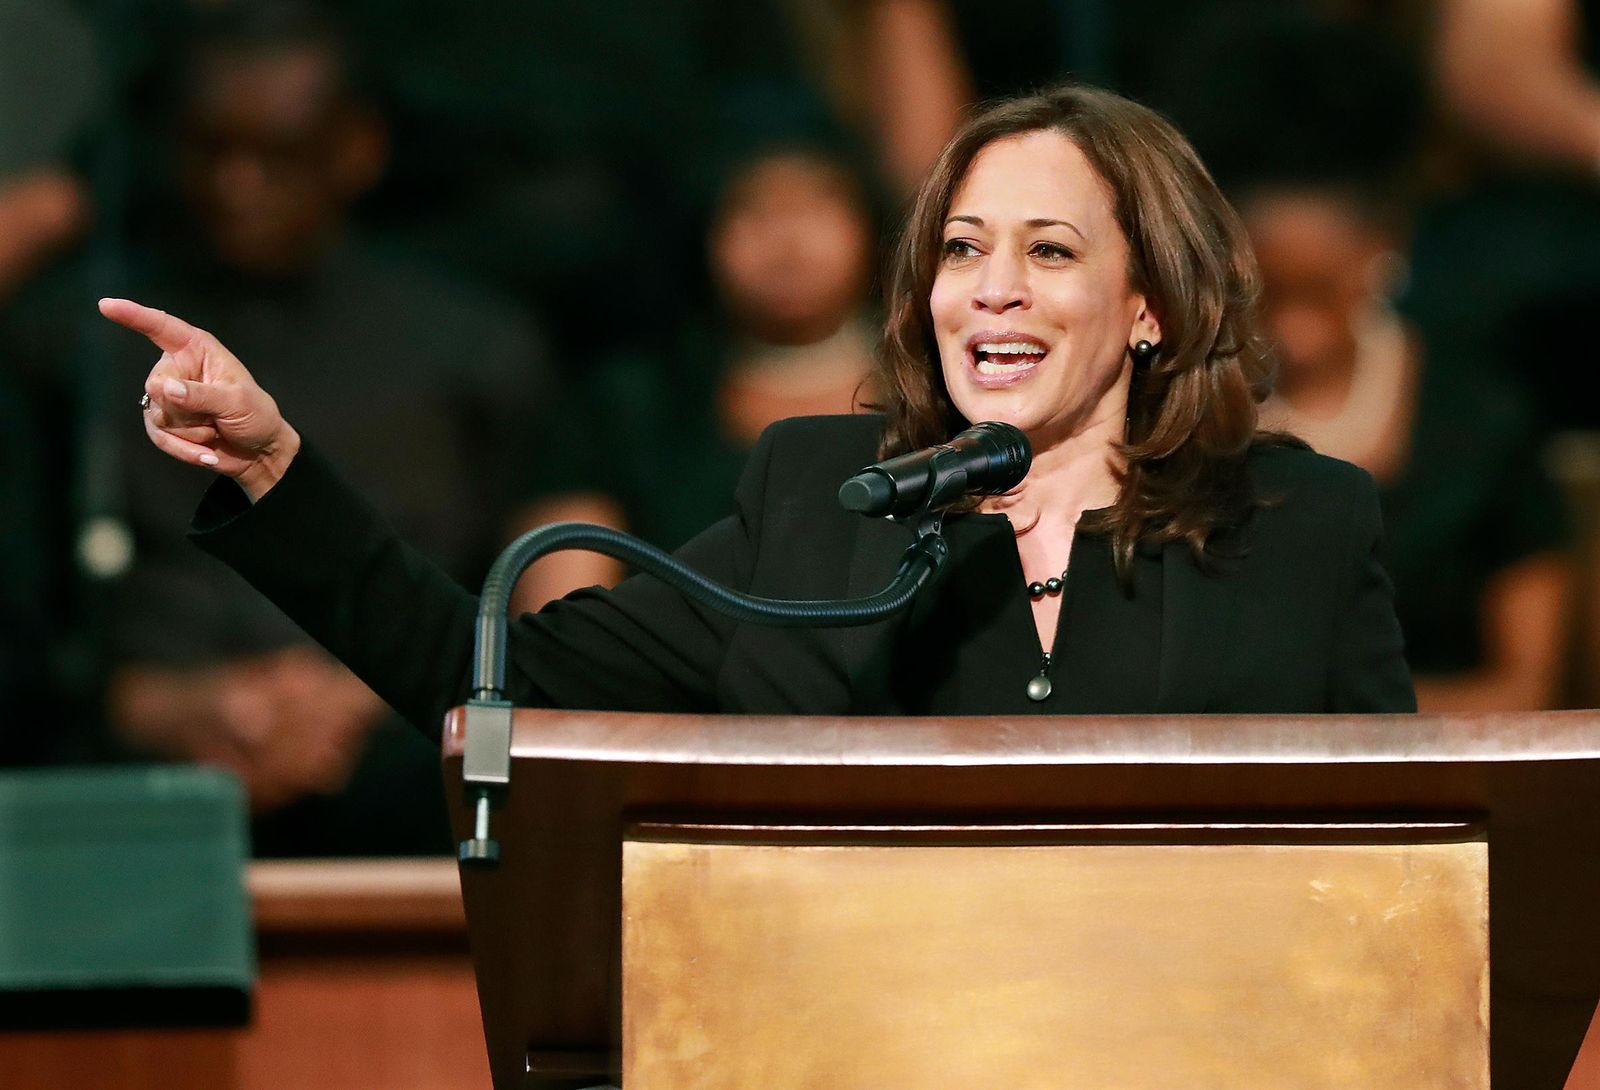 U.S. Sen. Kamala Harris, D-Calif., makes special remarks during the worship service at Ebenezer Baptist Church on Sunday, March 24, 2019, in Atlanta.{ } via AP)